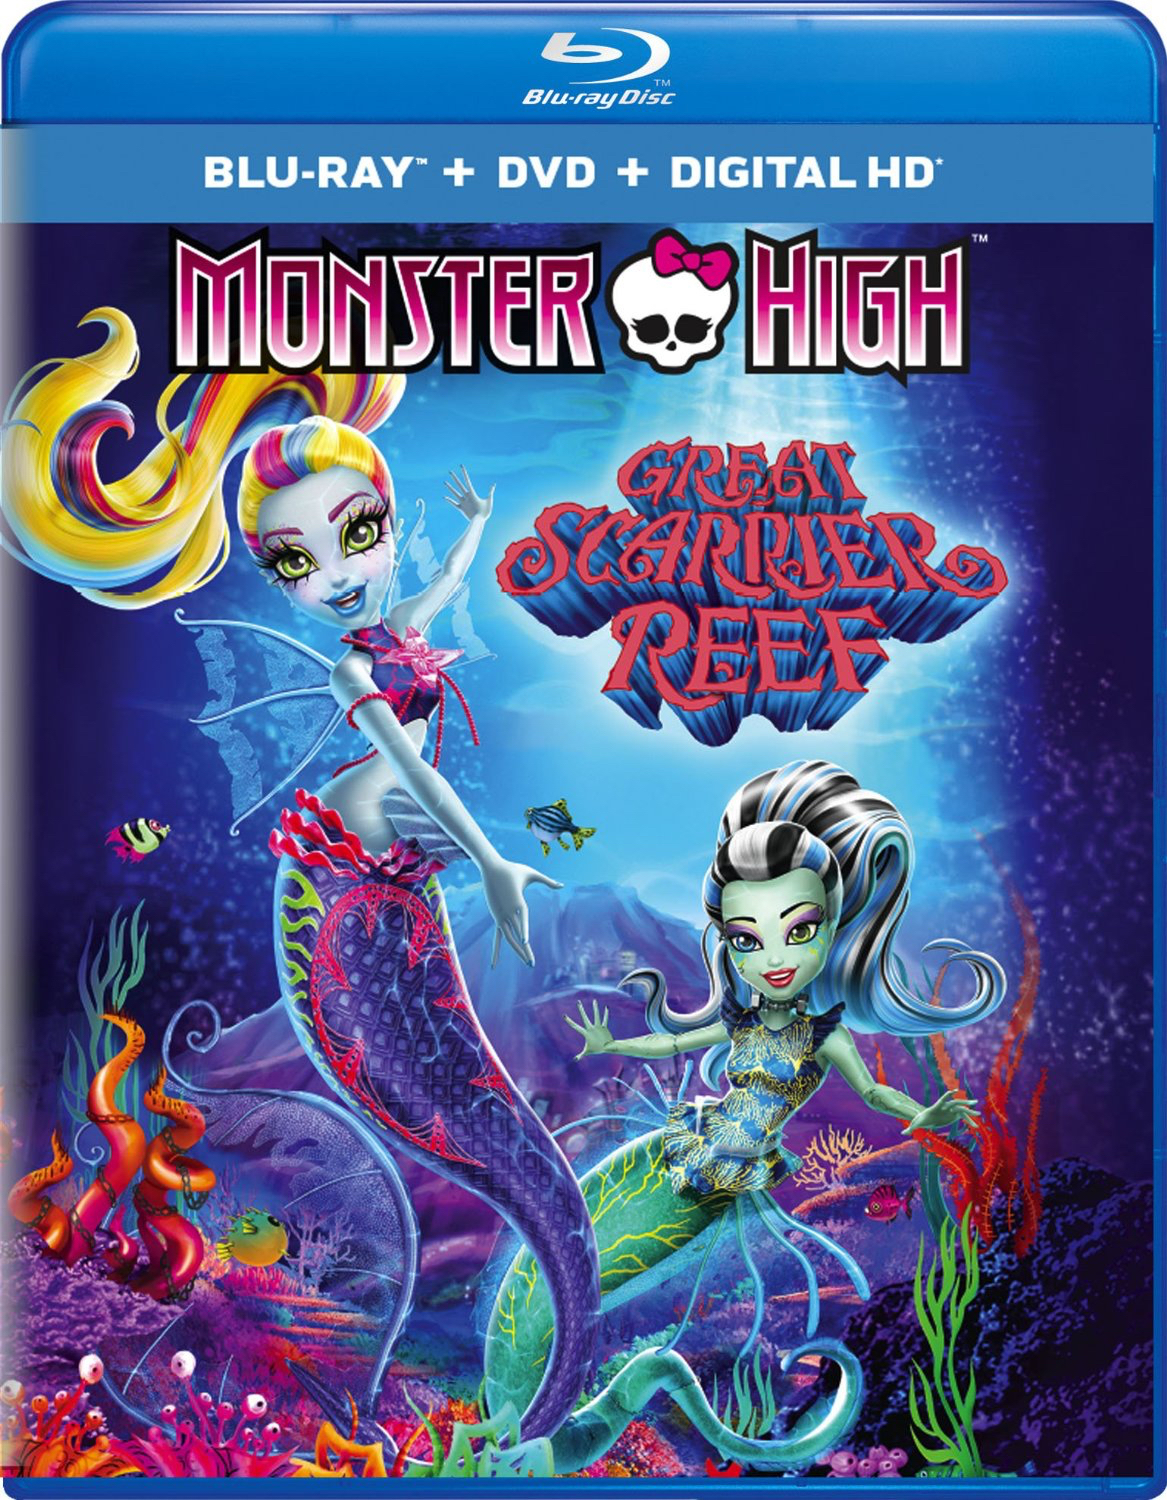 Monster High: Great Scarrier Reef (TV) (2016) Blu-ray